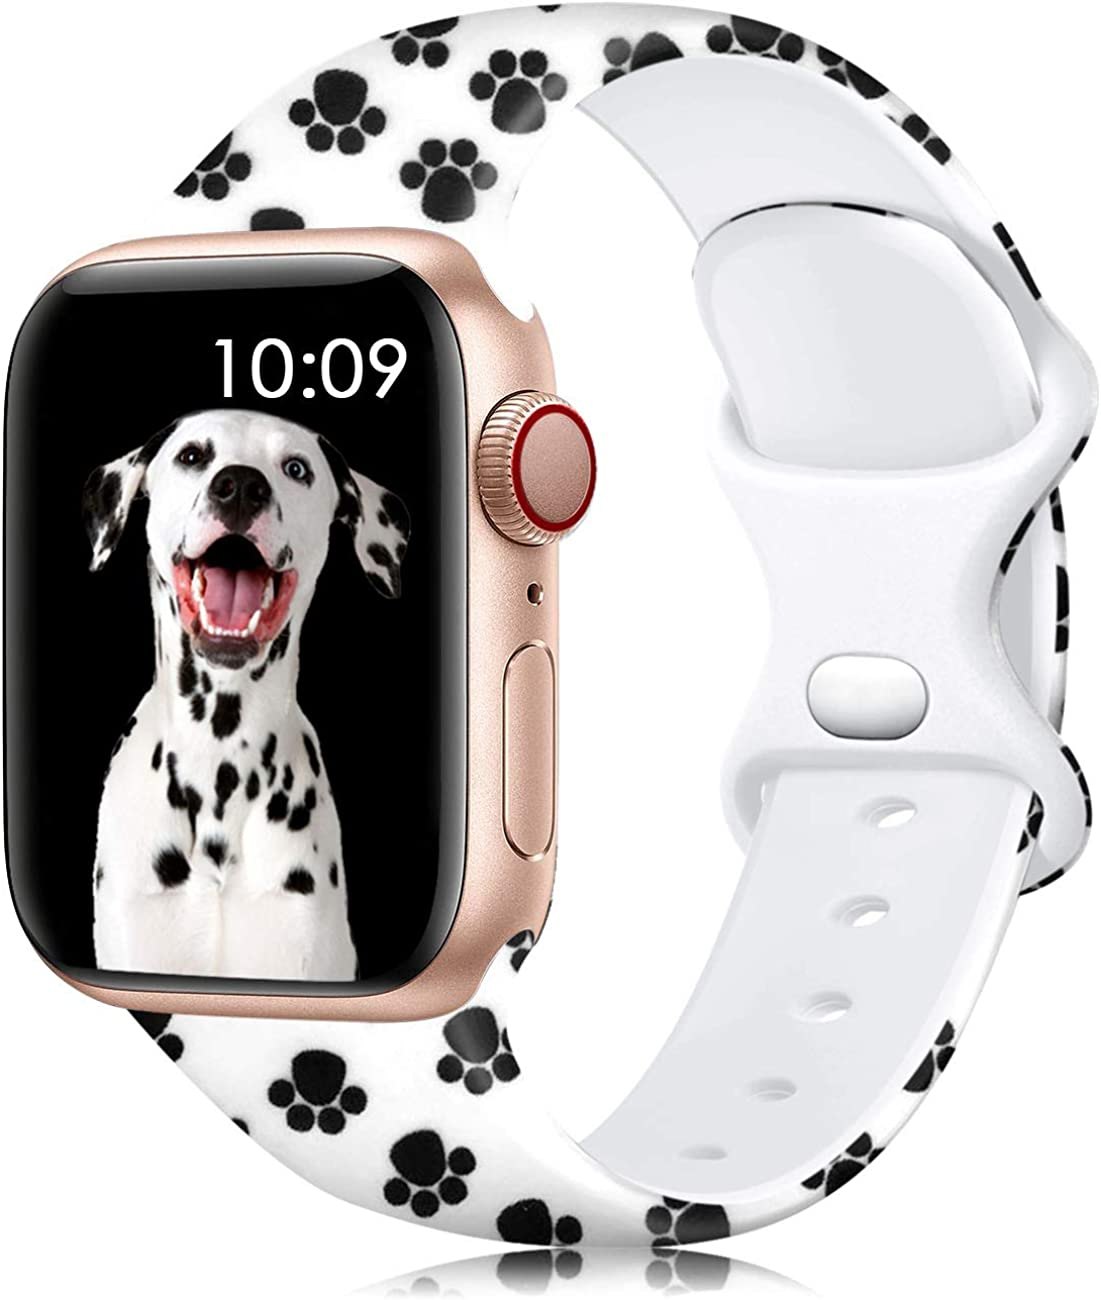 Lerobo Bands Compatible with Apple Watch Bands 40mm 38mm 44mm 42mm Women Men, Silicone Floral Printed Fadeless Pattern Replacement Bands for Apple Watch SE iWatch Series 6,Series 3,Series 5 4 3 2 1